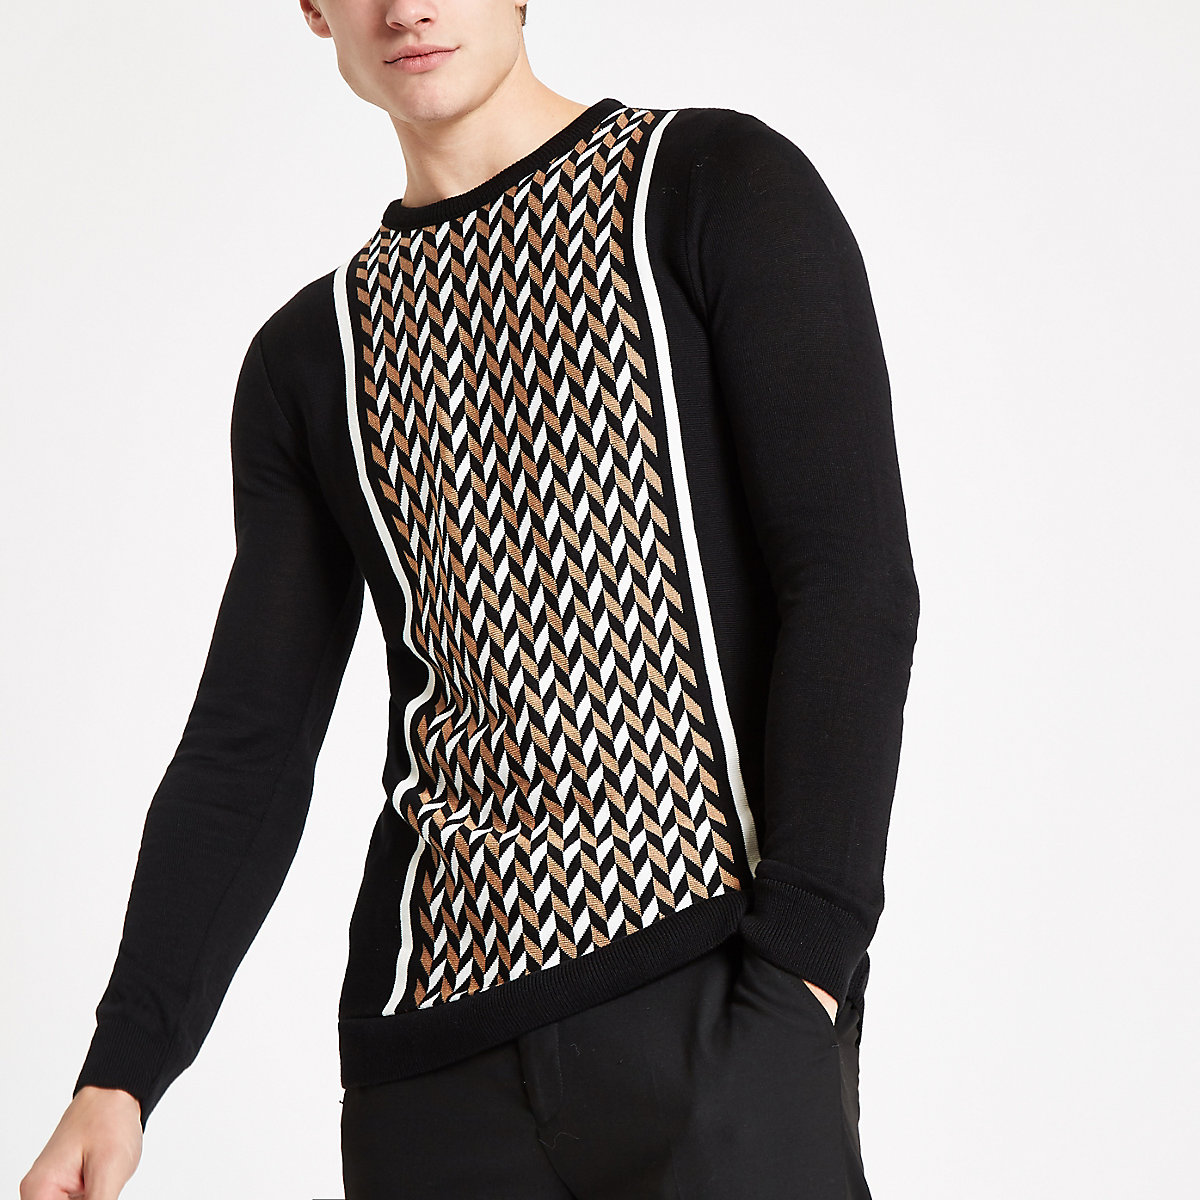 Olly Murs black geo print slim fit jumper